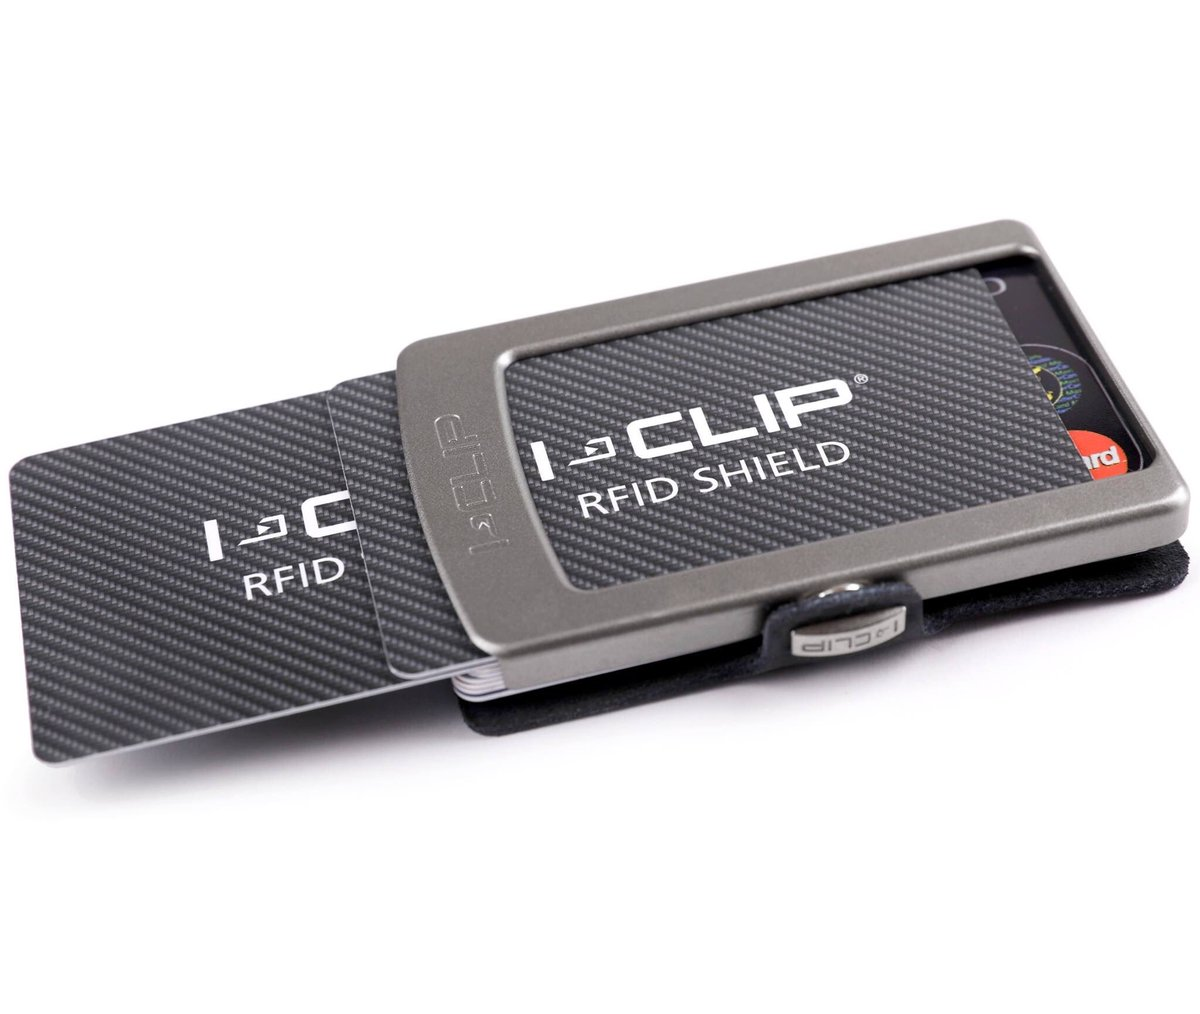 An additional layer of security w/o sacrificing the comforts of your #iclip: clarity, overview, lightness & ease of use.  #rfid #slimwallet https://t.co/9Kl64SEo6f